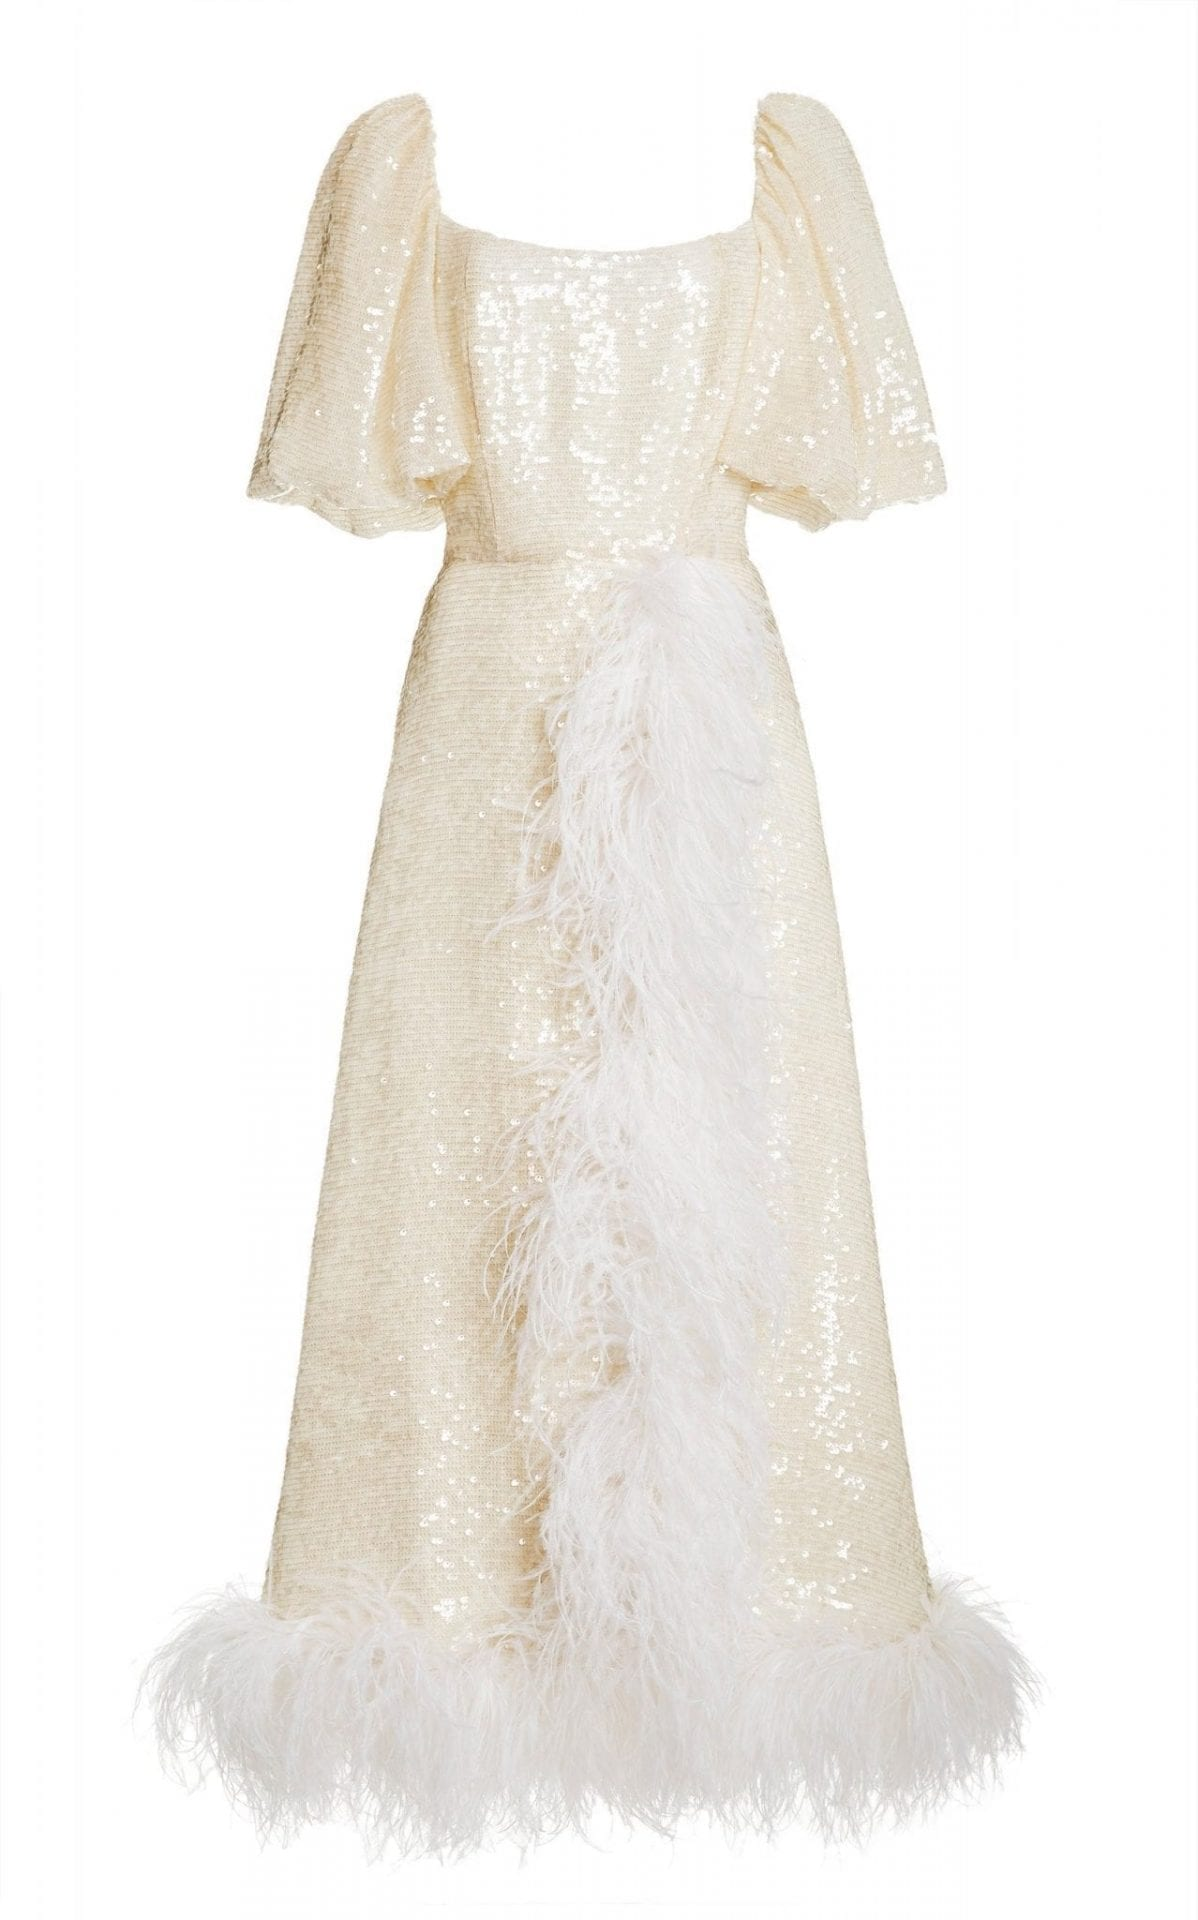 MARKARIAN Ostrich Feather-Embellished Sequin Puff Sleeve Wrap Dress